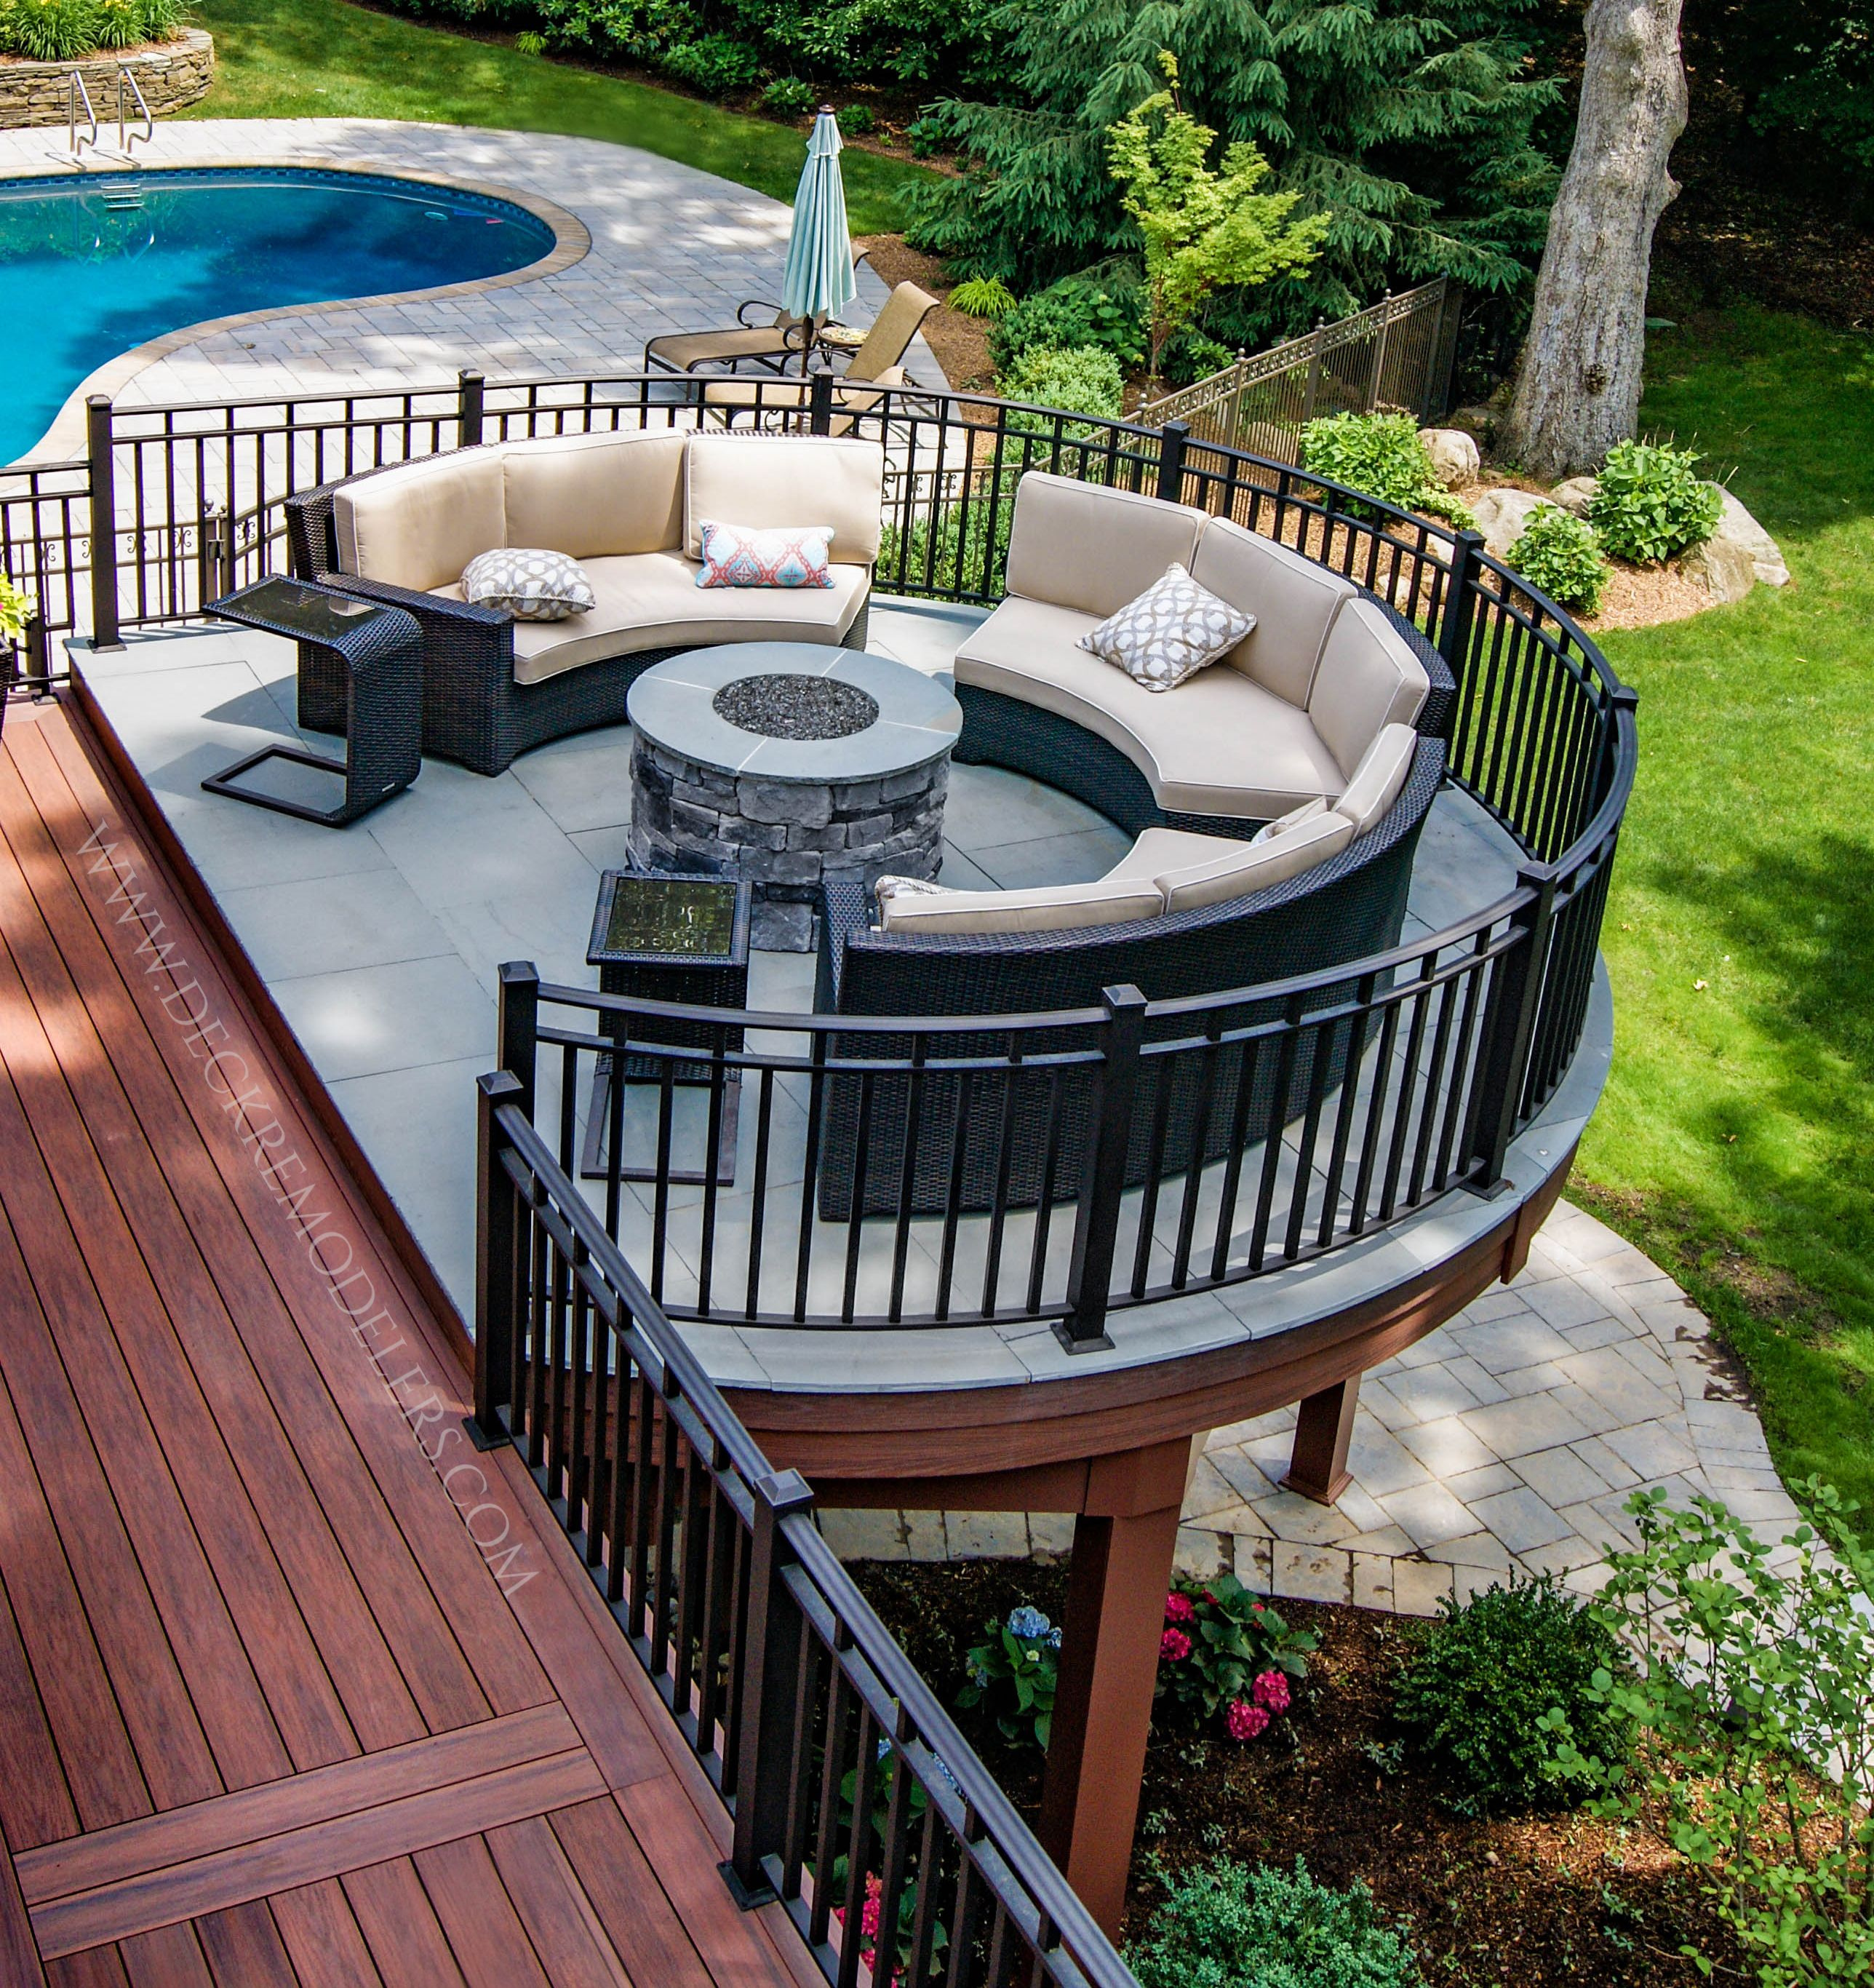 Tante S Fr Loves This Watch Your Kids In The Pool From This Elevateddeck With An Awesome Firepit Patio Deck Designs Deck Designs Backyard Patio Design